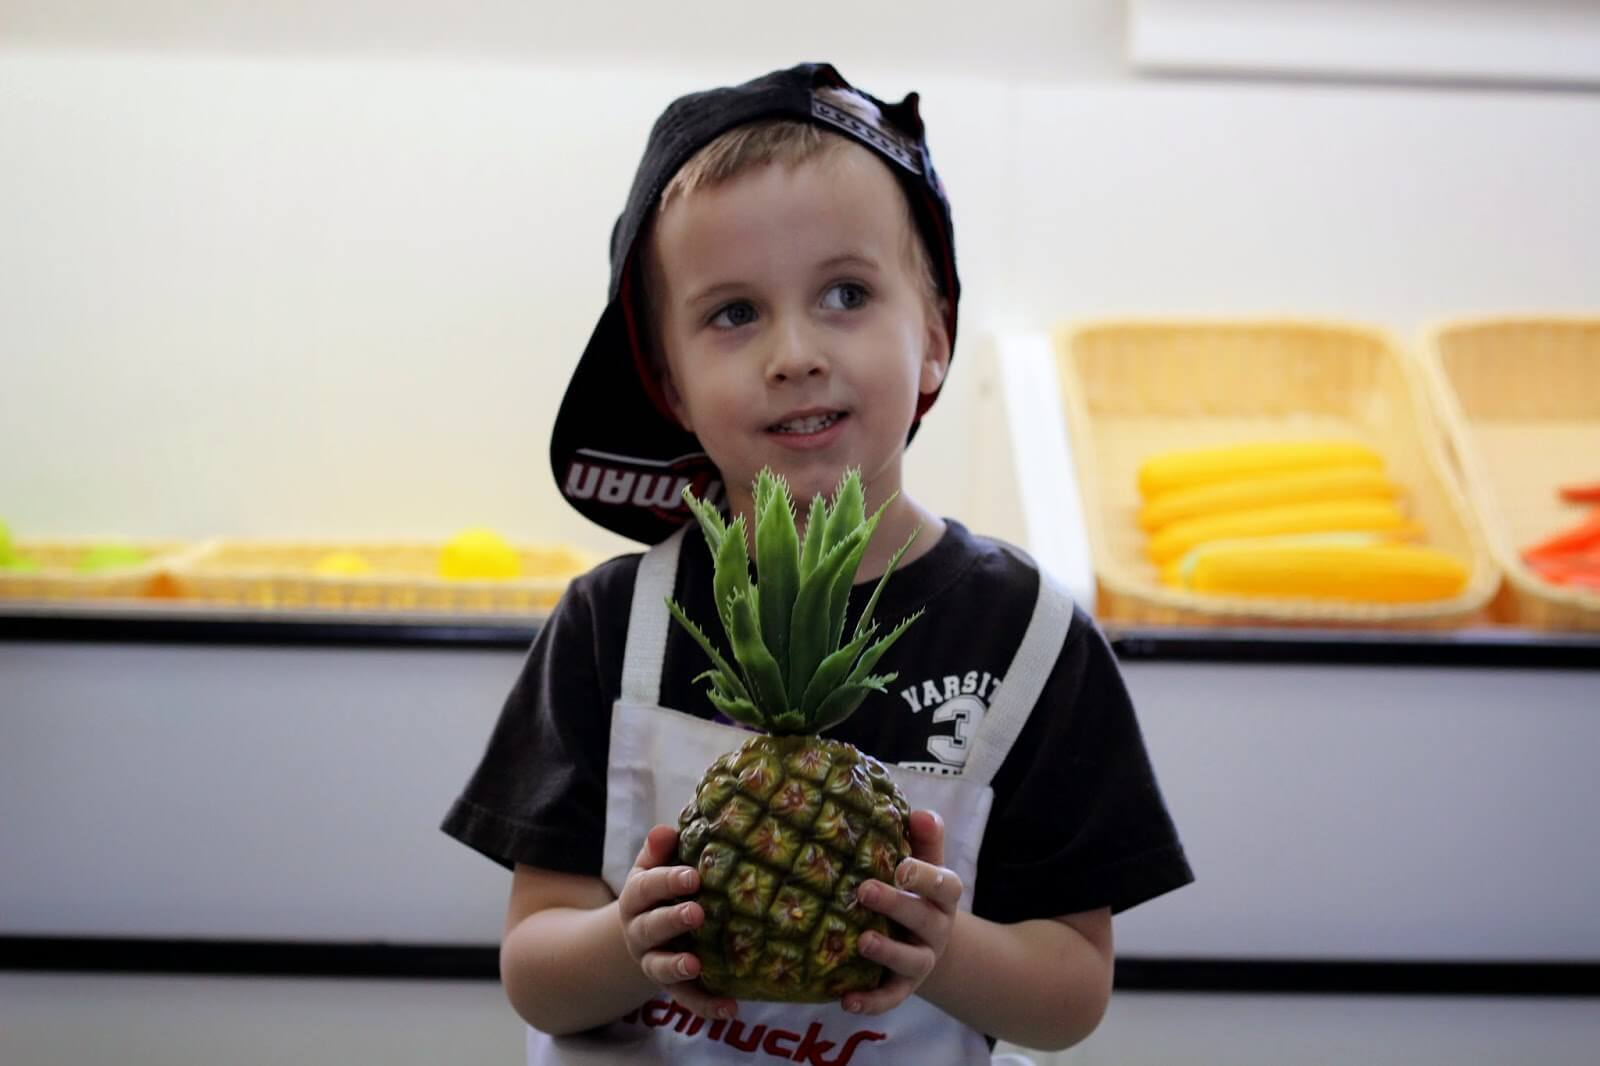 boy holding pineapple